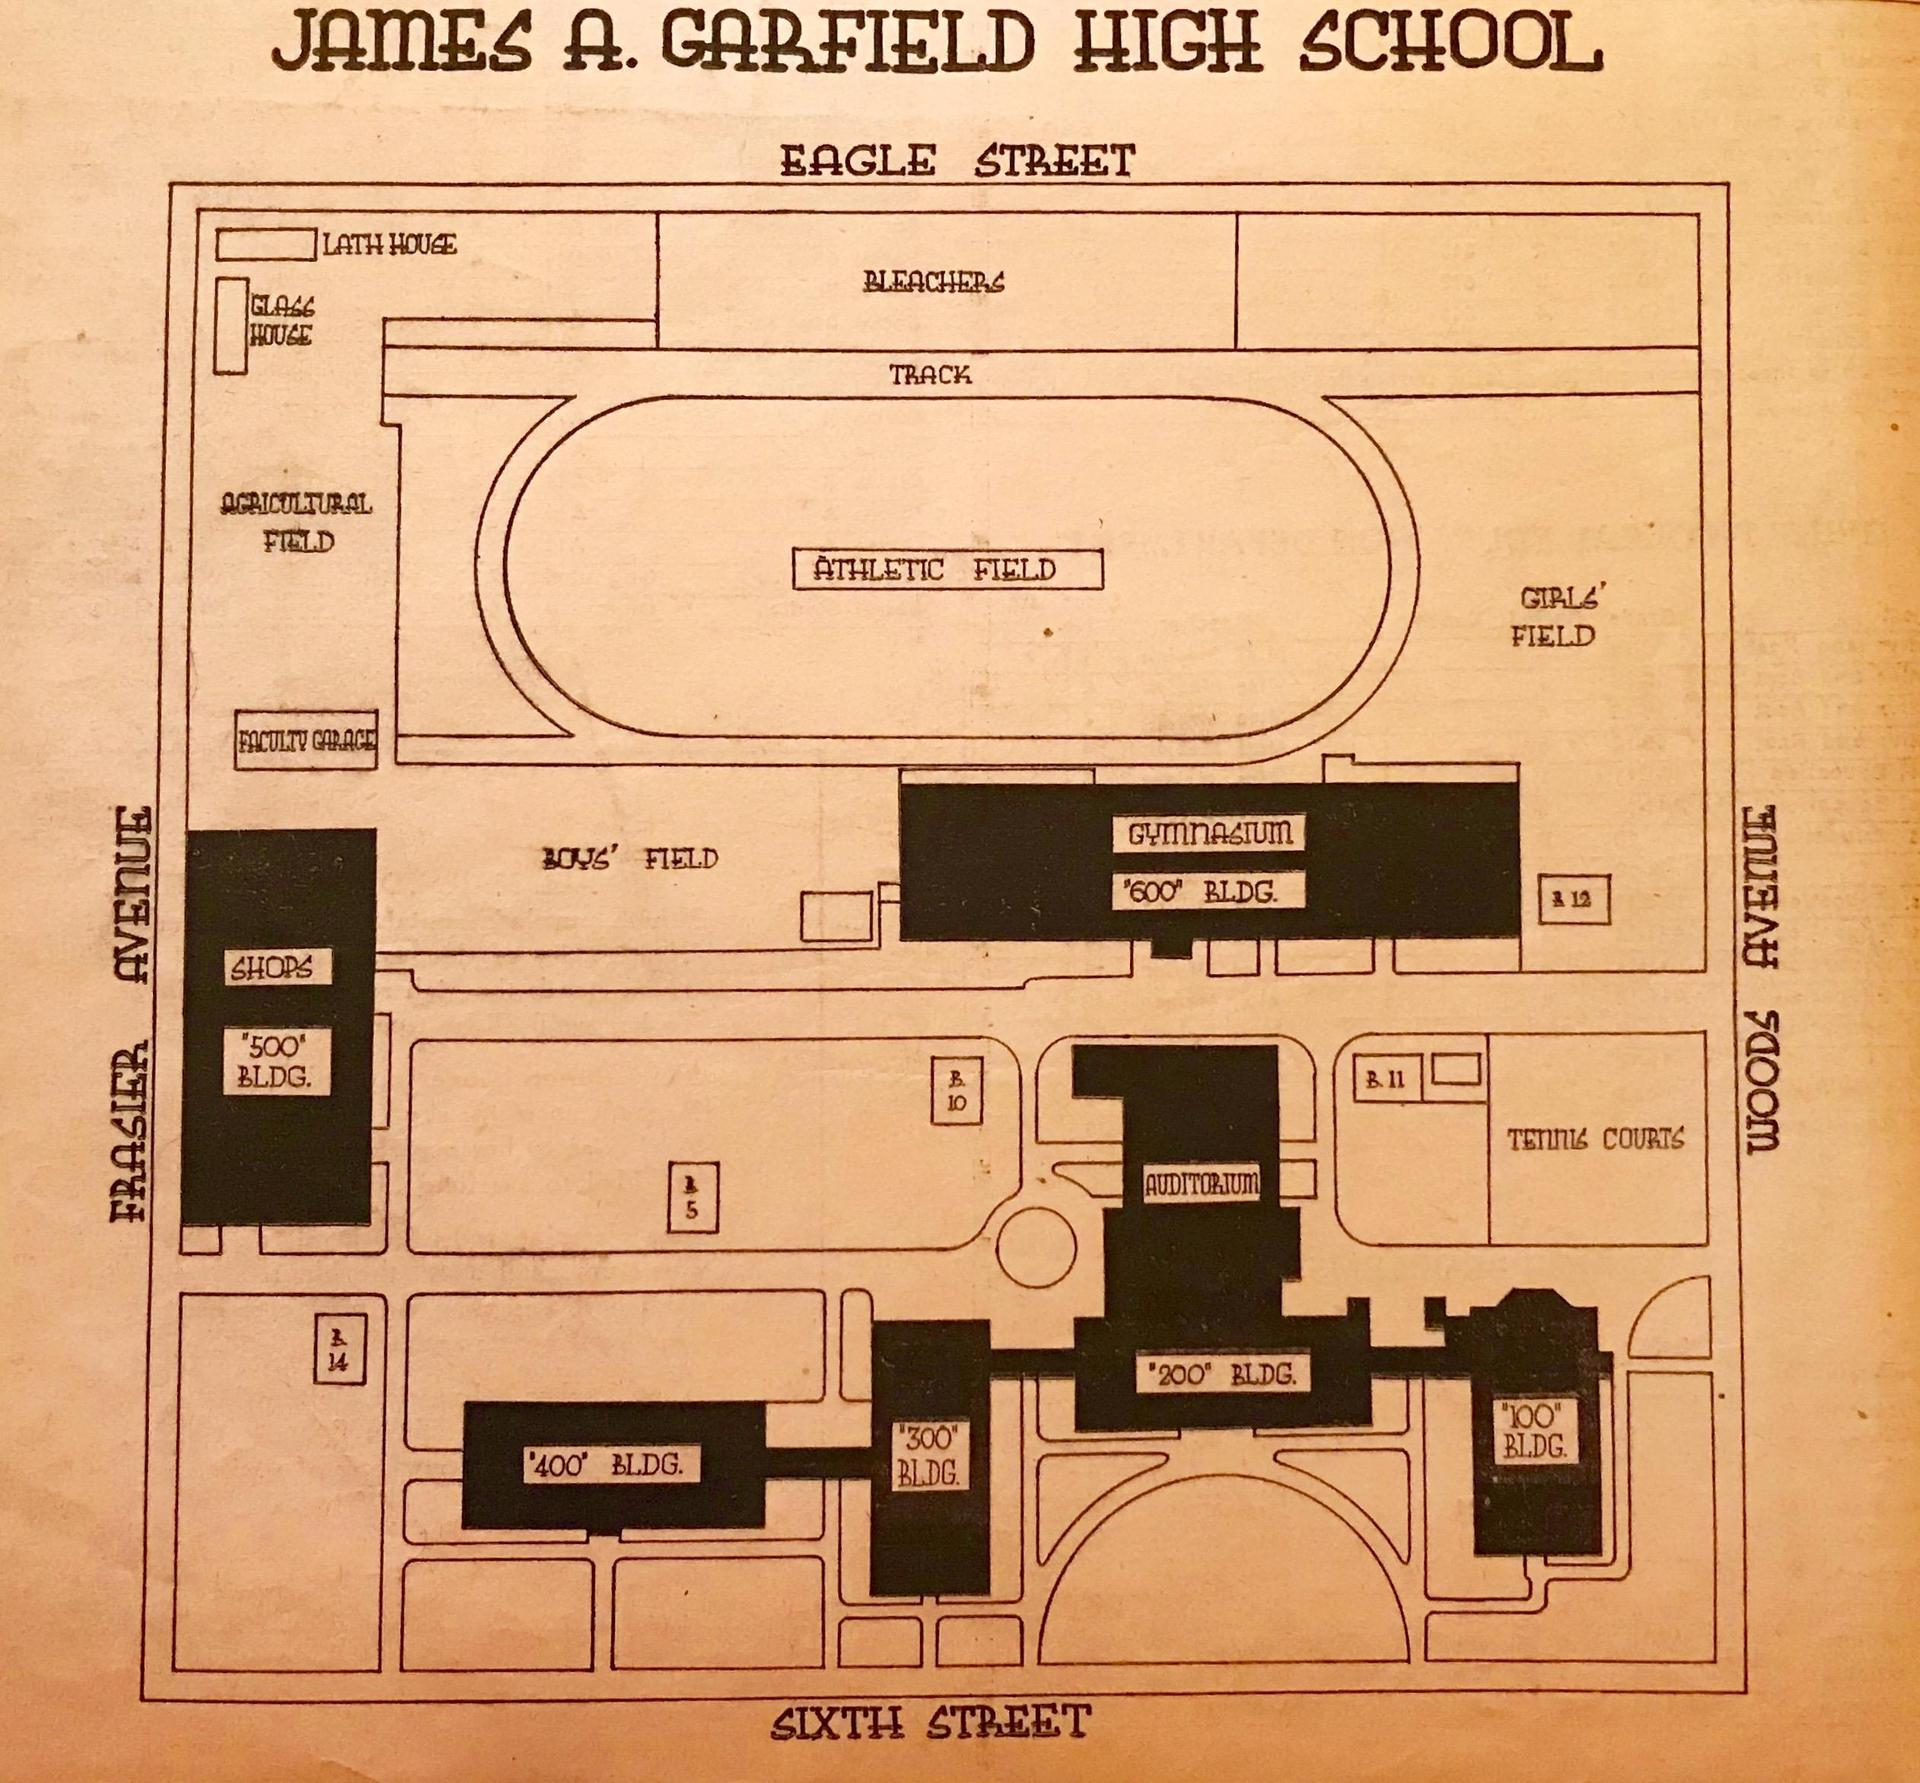 School layout 1940s